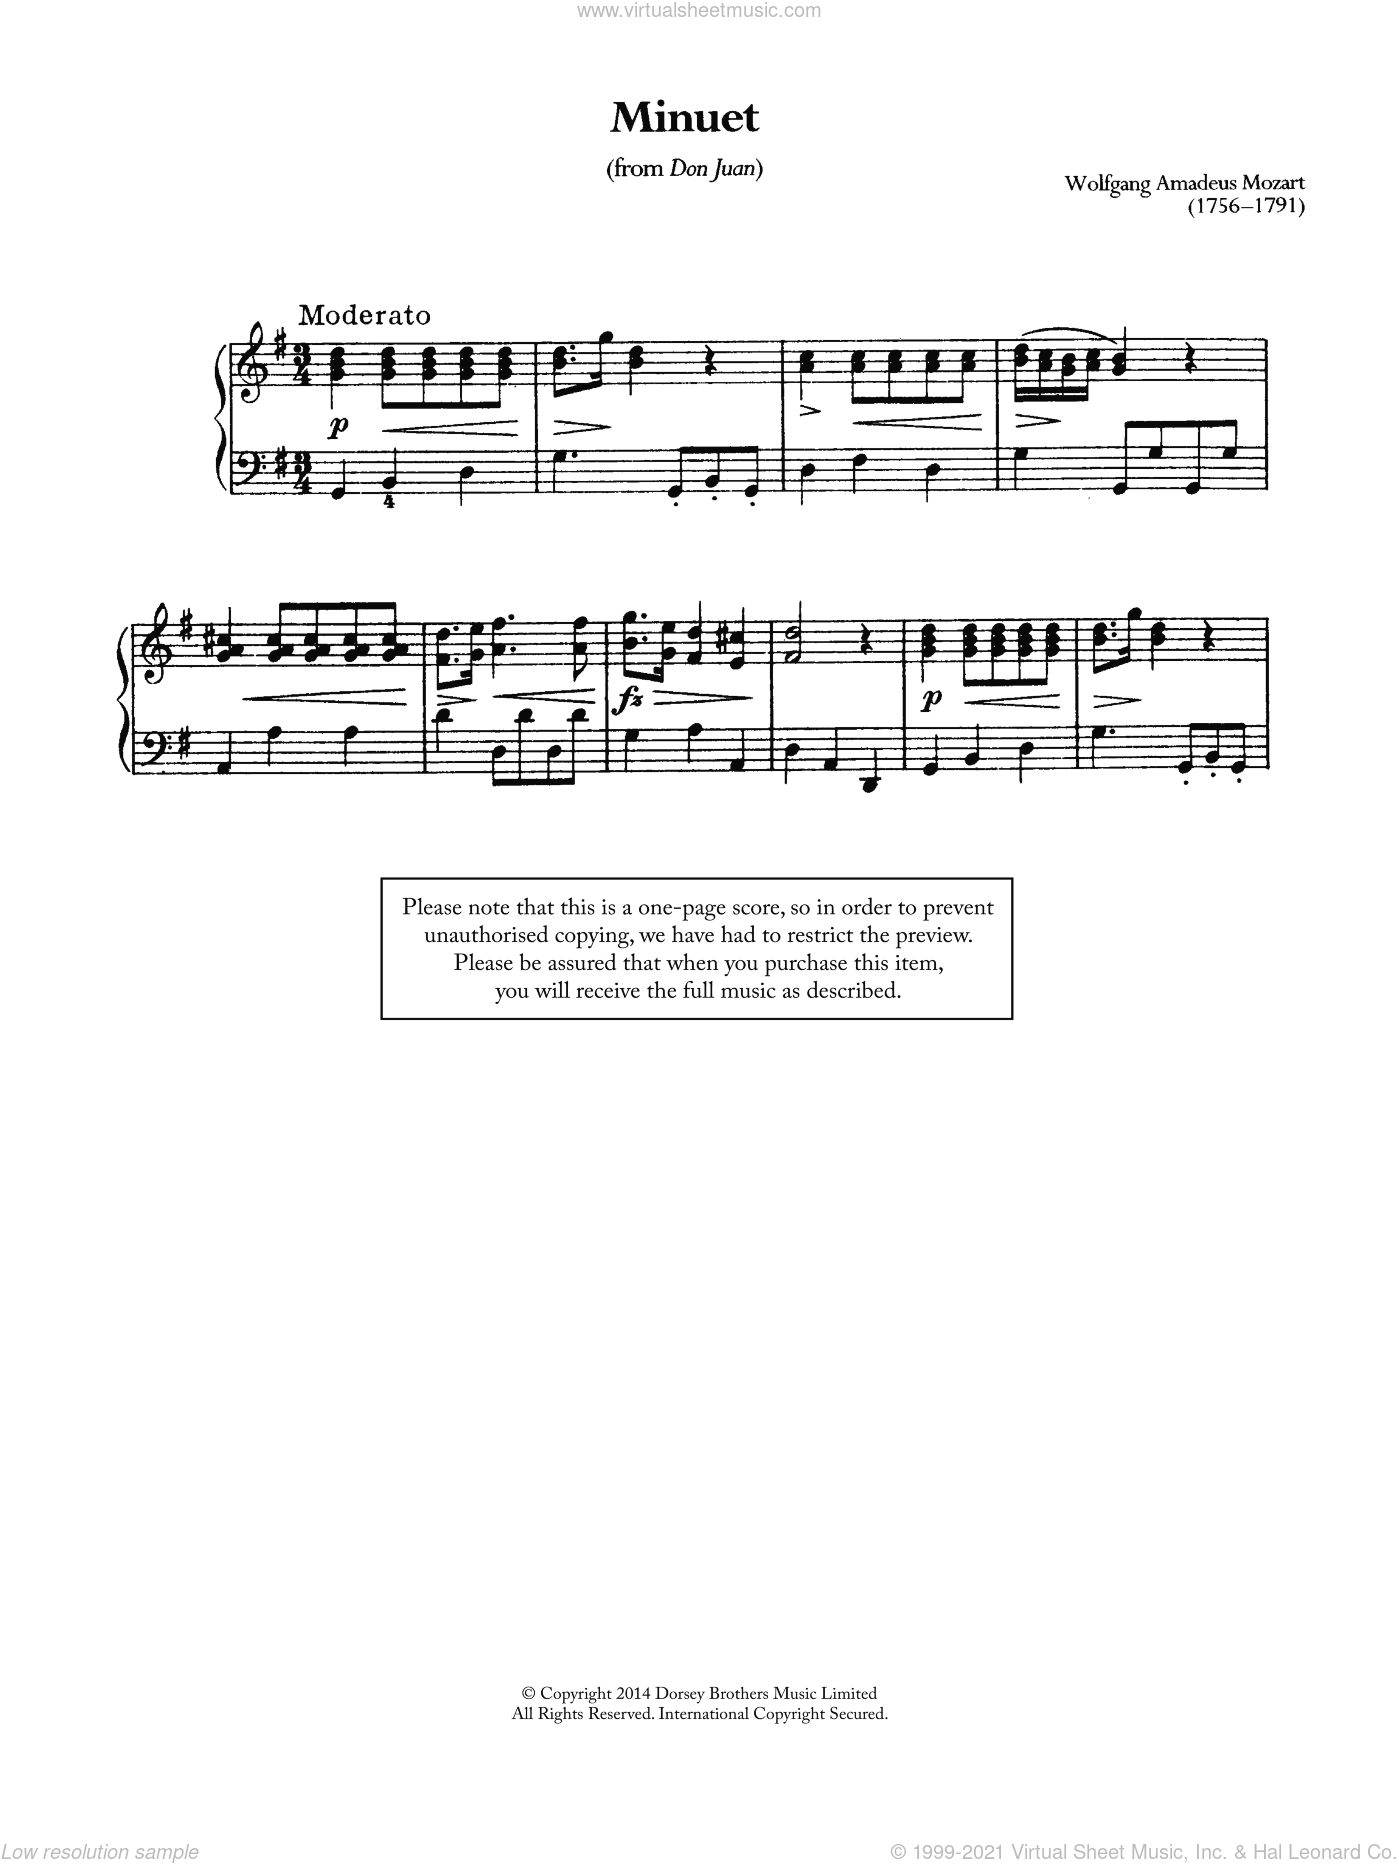 Minuet (From 'Don Juan') sheet music for piano solo by Wolfgang Amadeus Mozart